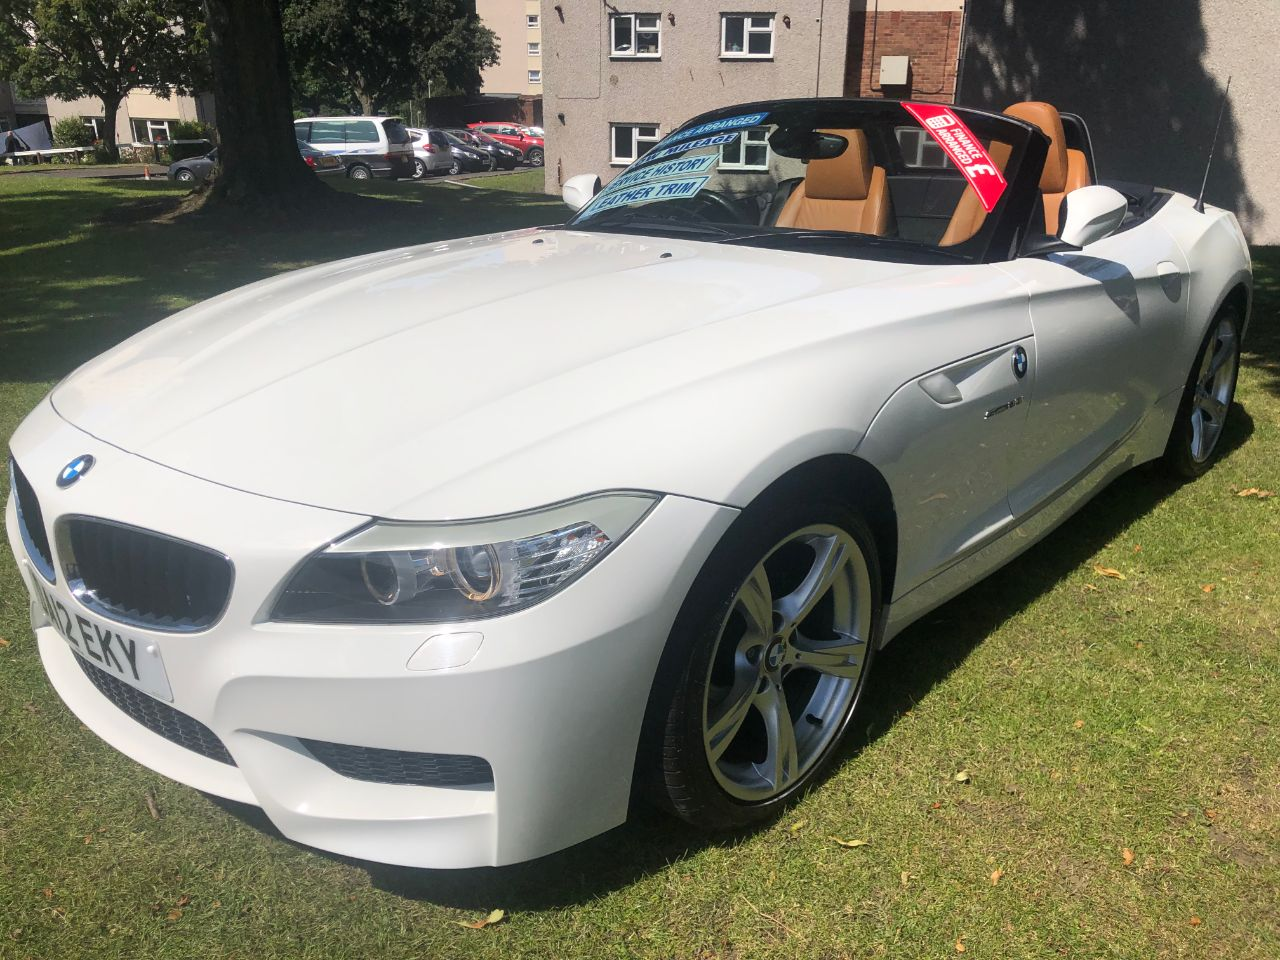 BMW Z4 2.0 20i sDrive M Sport 2dr Roadster Hard-top Convertible *ONLY 50k MILES**REDUCED* at Halesowen Autos Halesowen